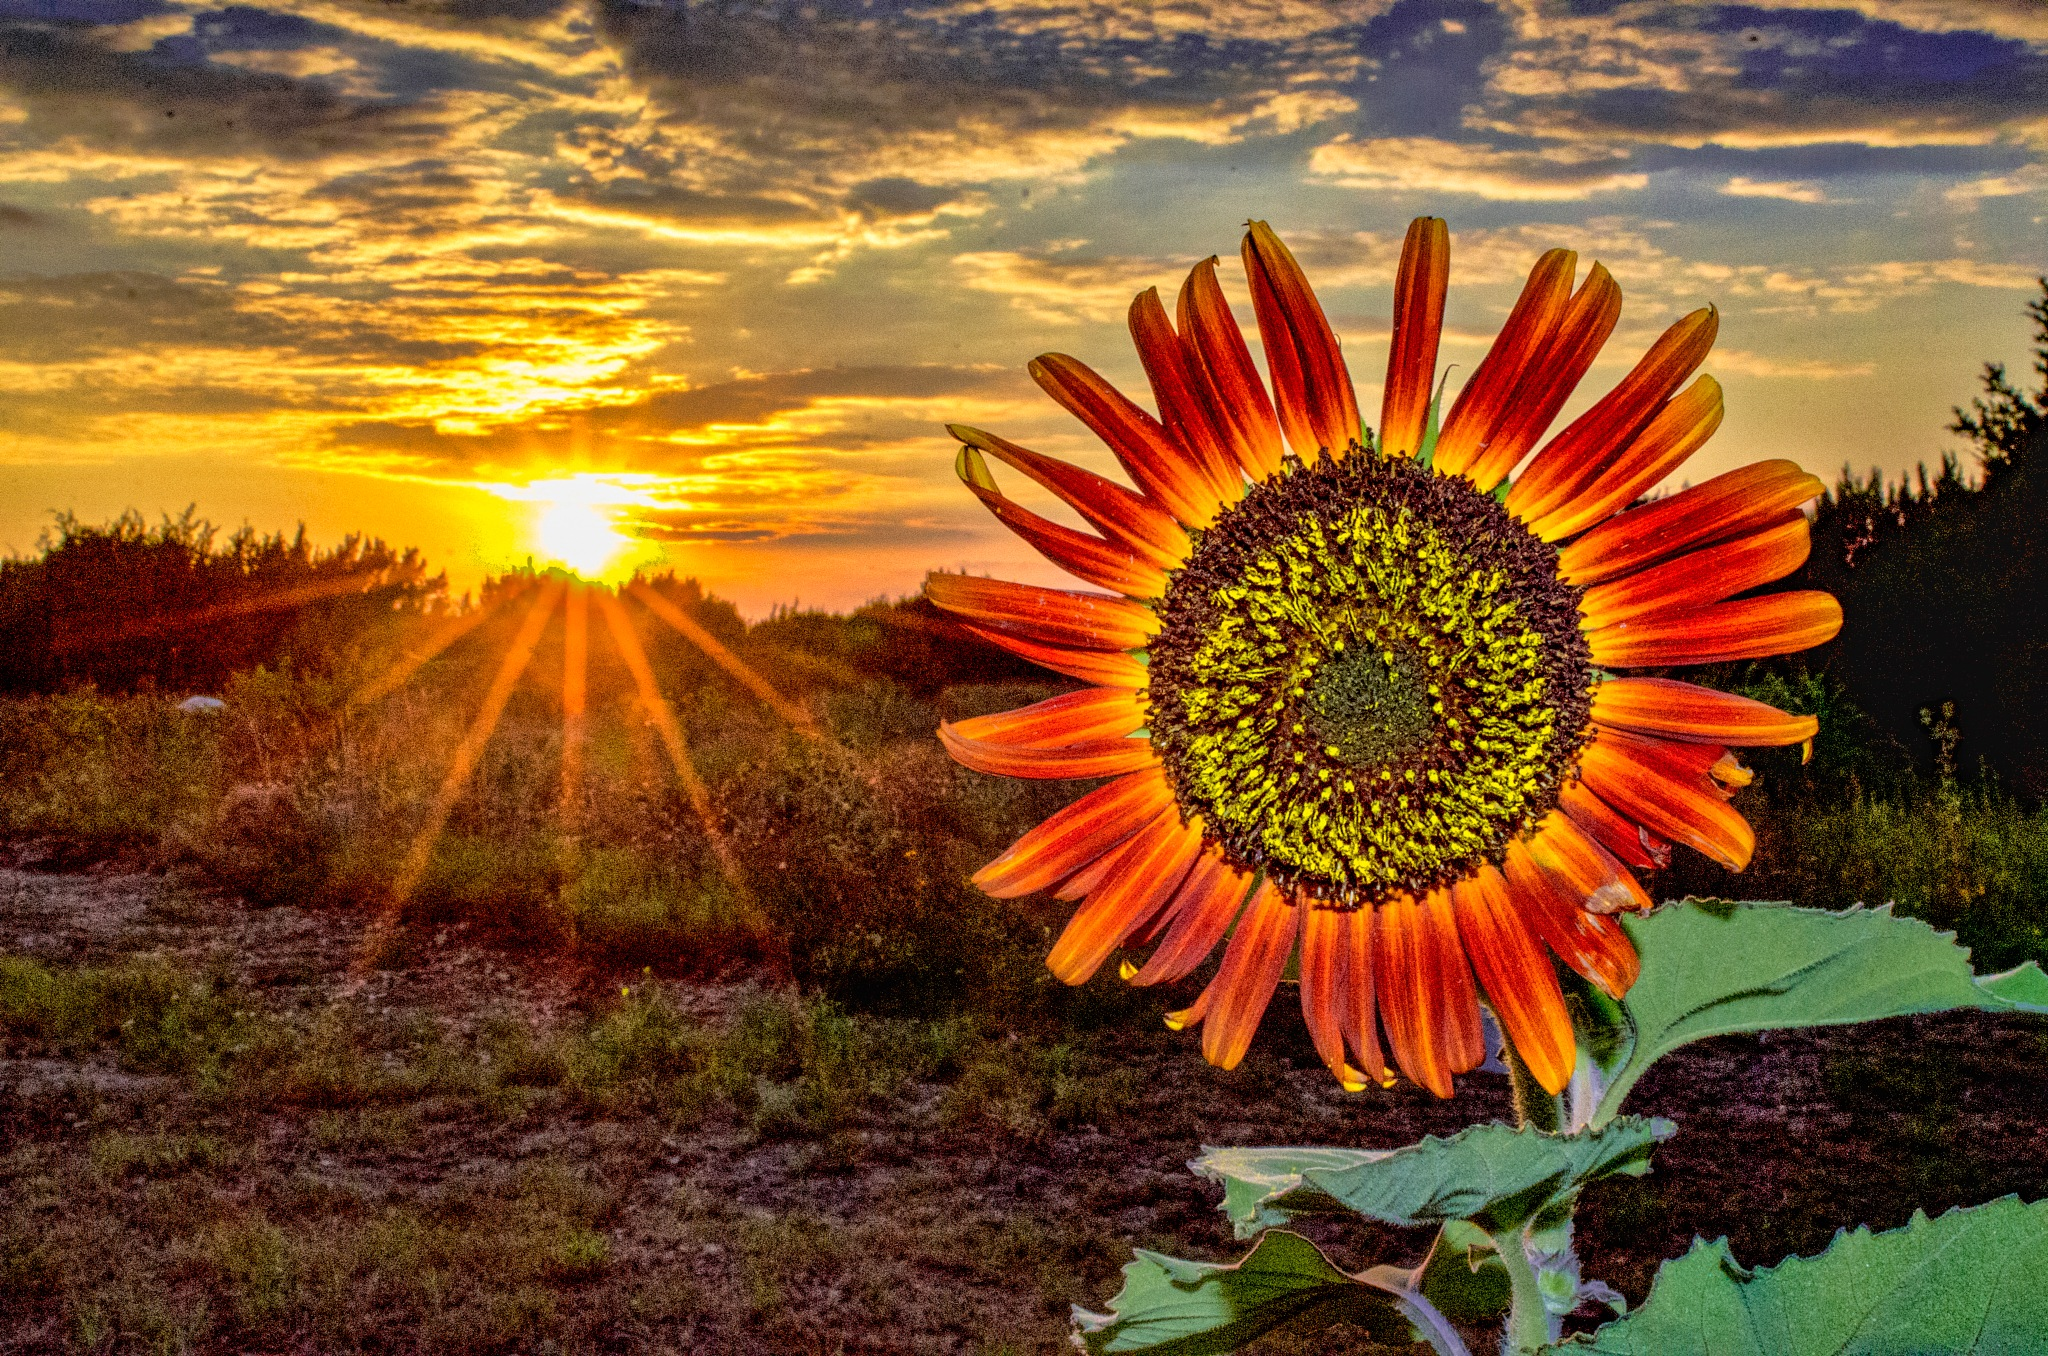 Sunflower Glowing In The Sunset by A. Michael Uhlmann